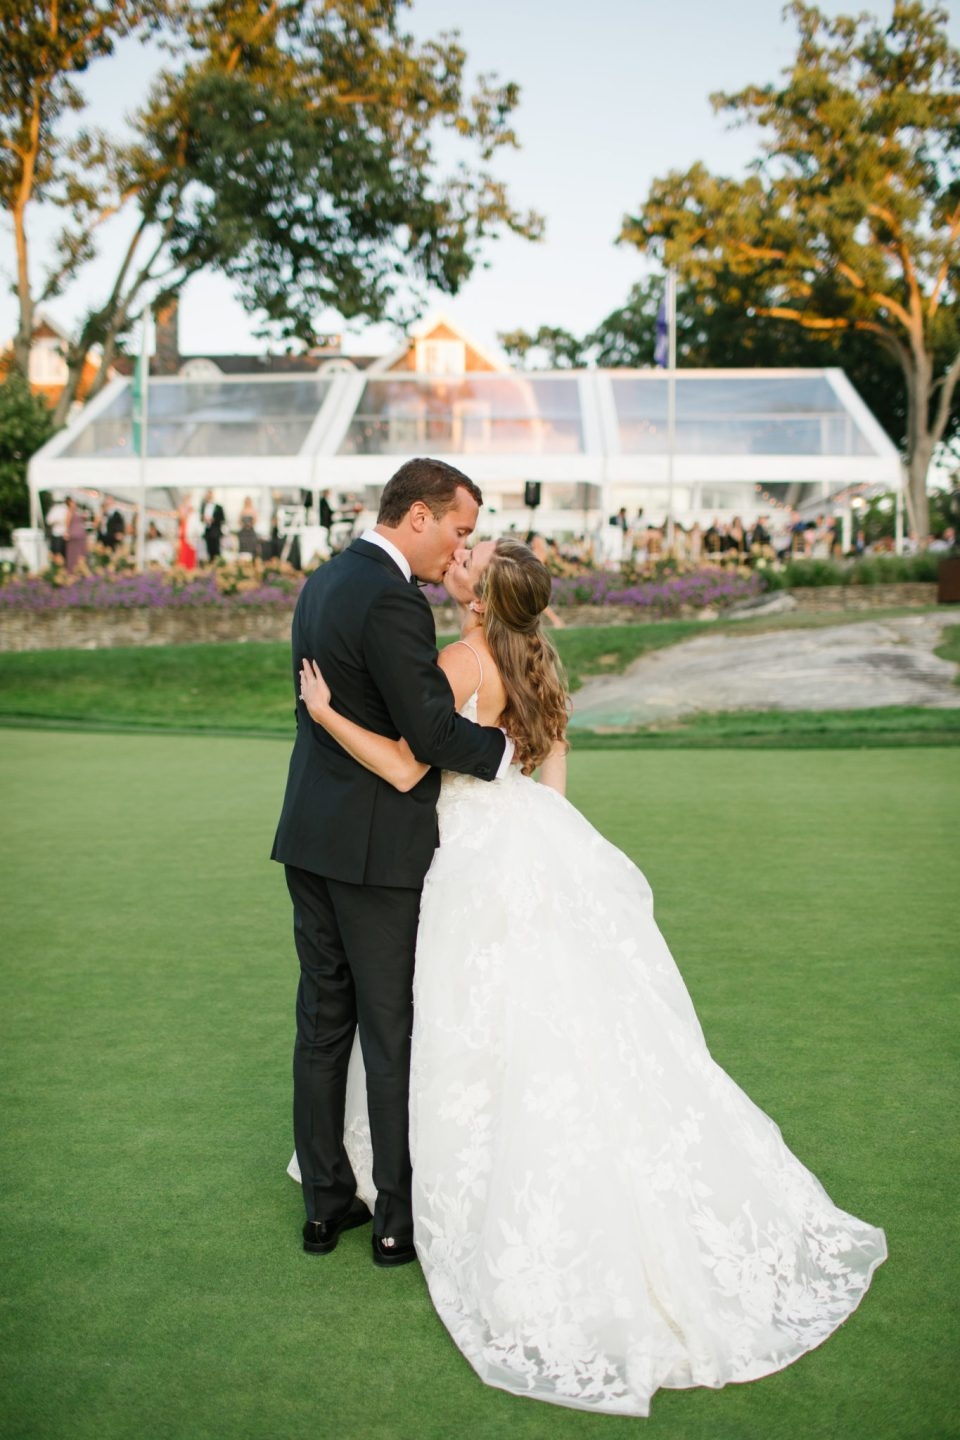 Ashley Mac Photographs takes newlywed portraits at golf course